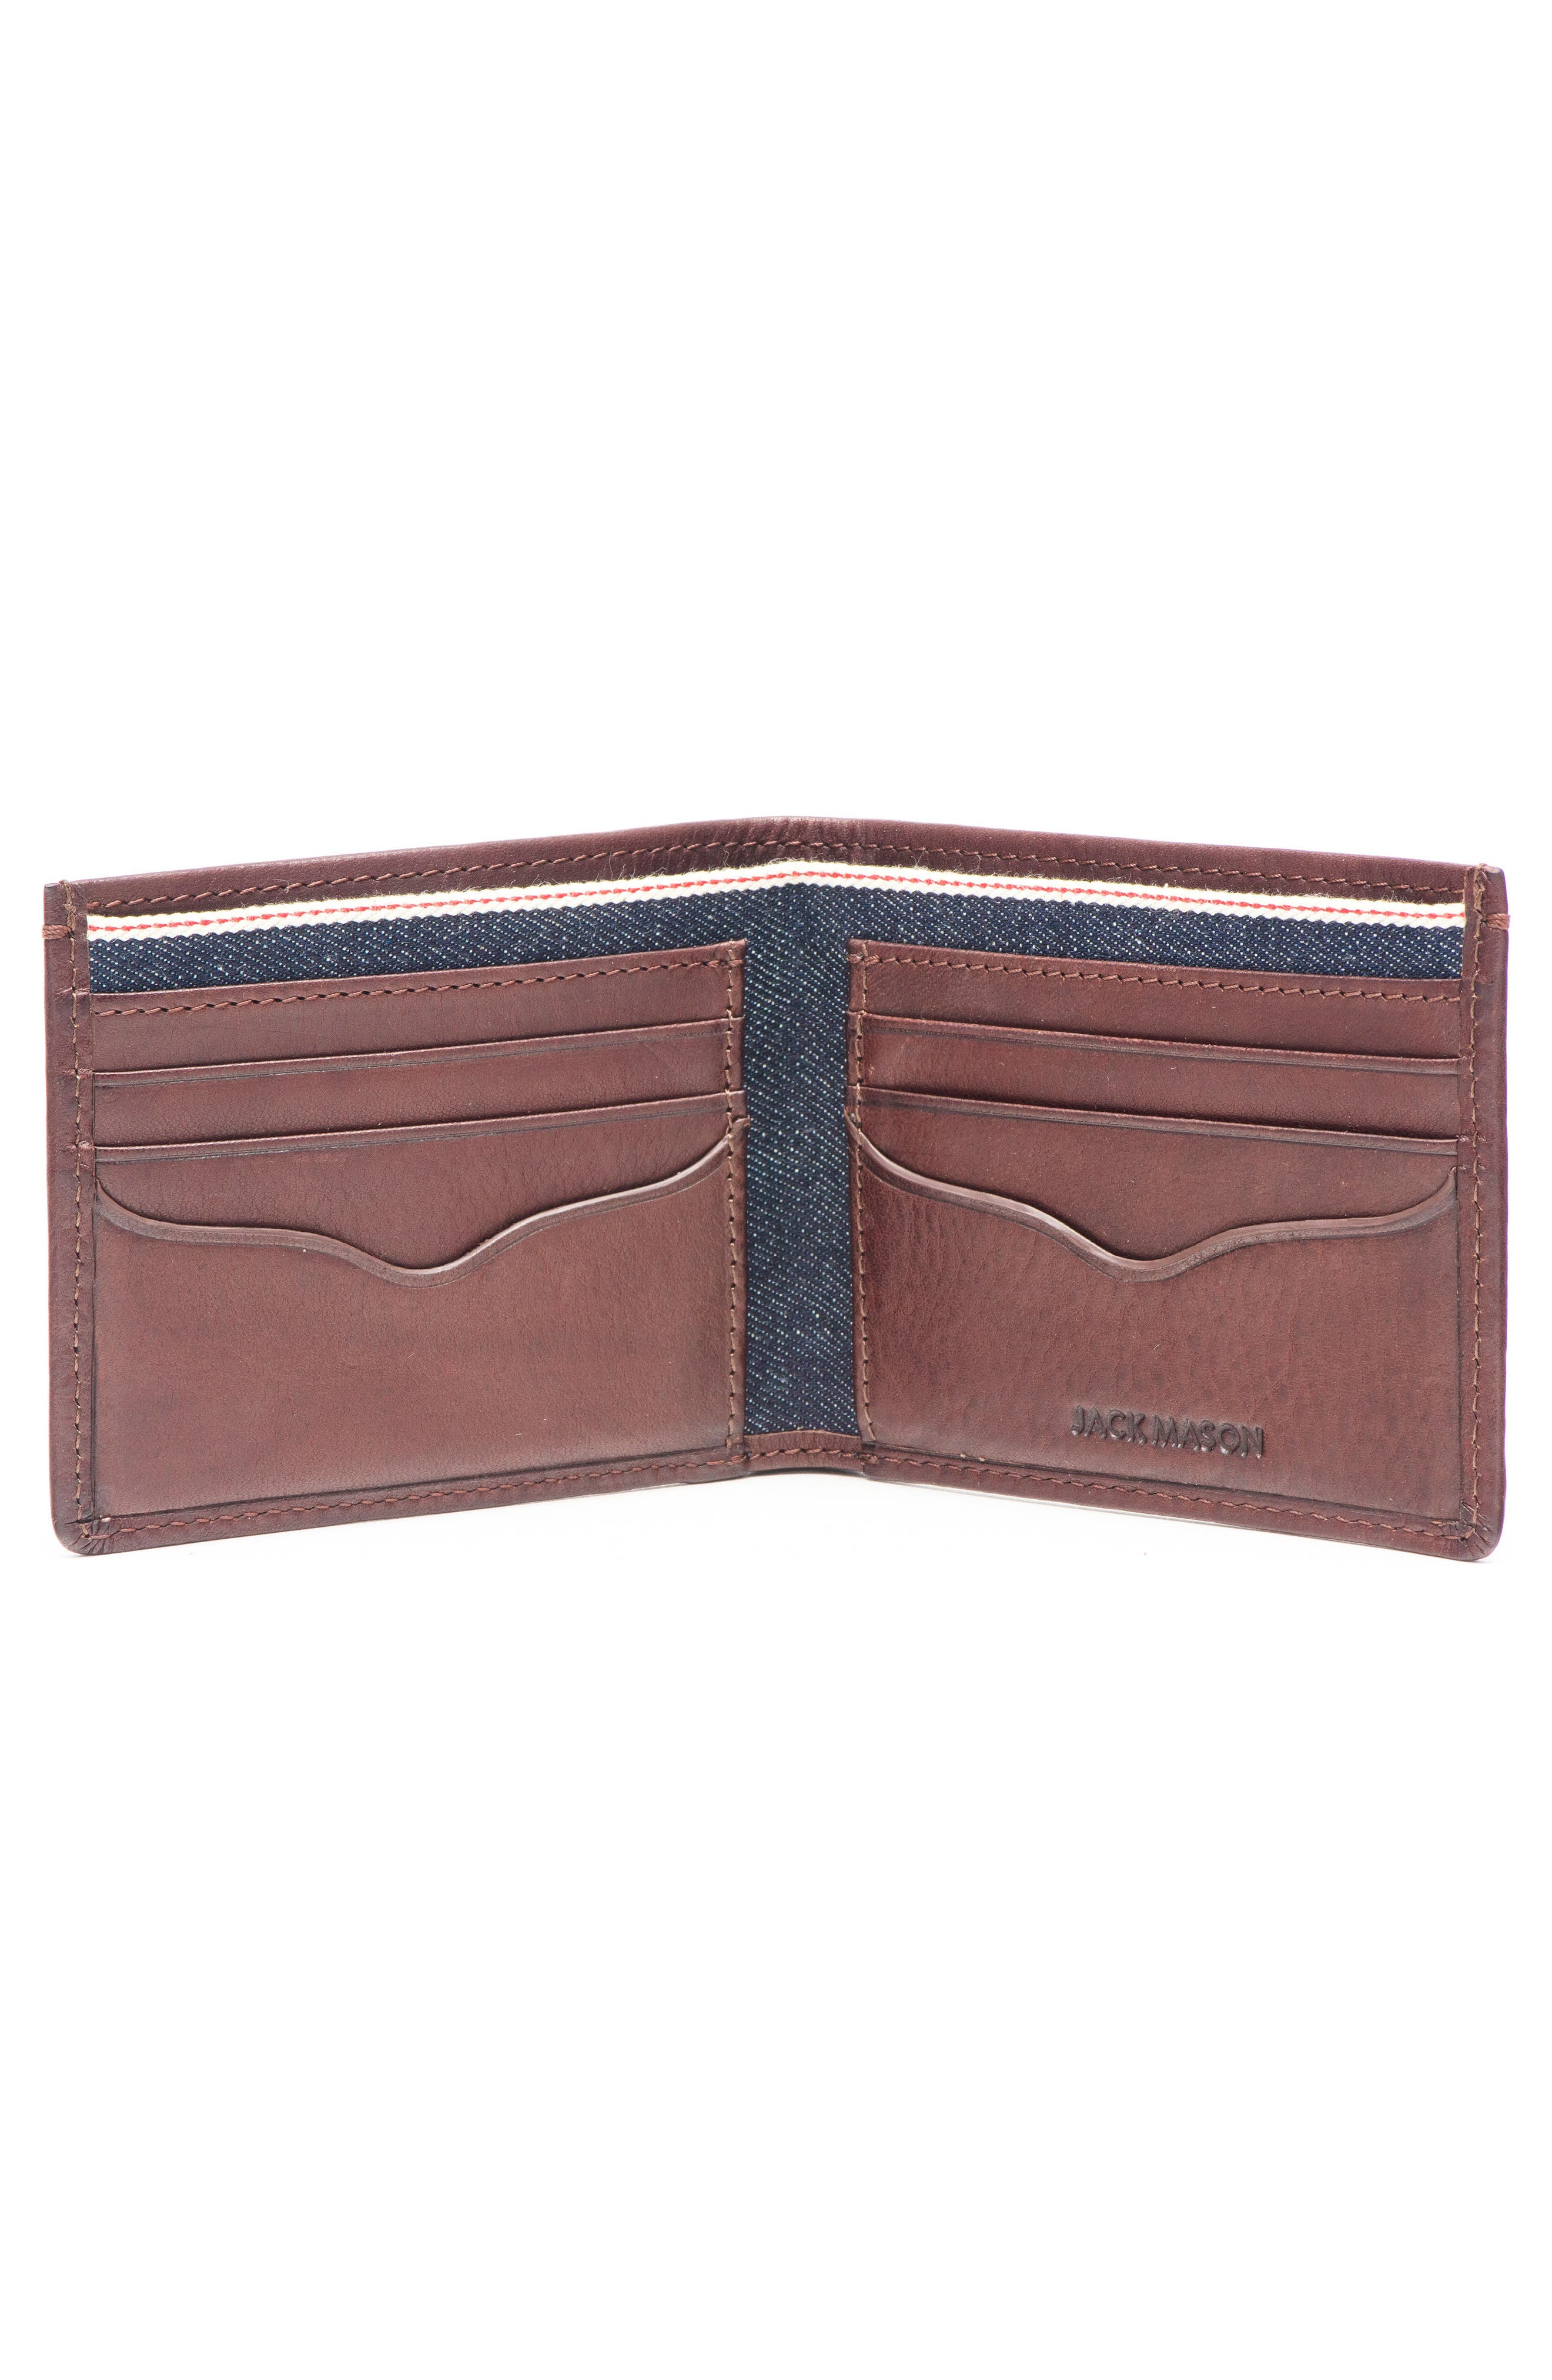 Leather & Denim Bifold Wallet,                             Alternate thumbnail 2, color,                             Blue Denim And Brown Leather